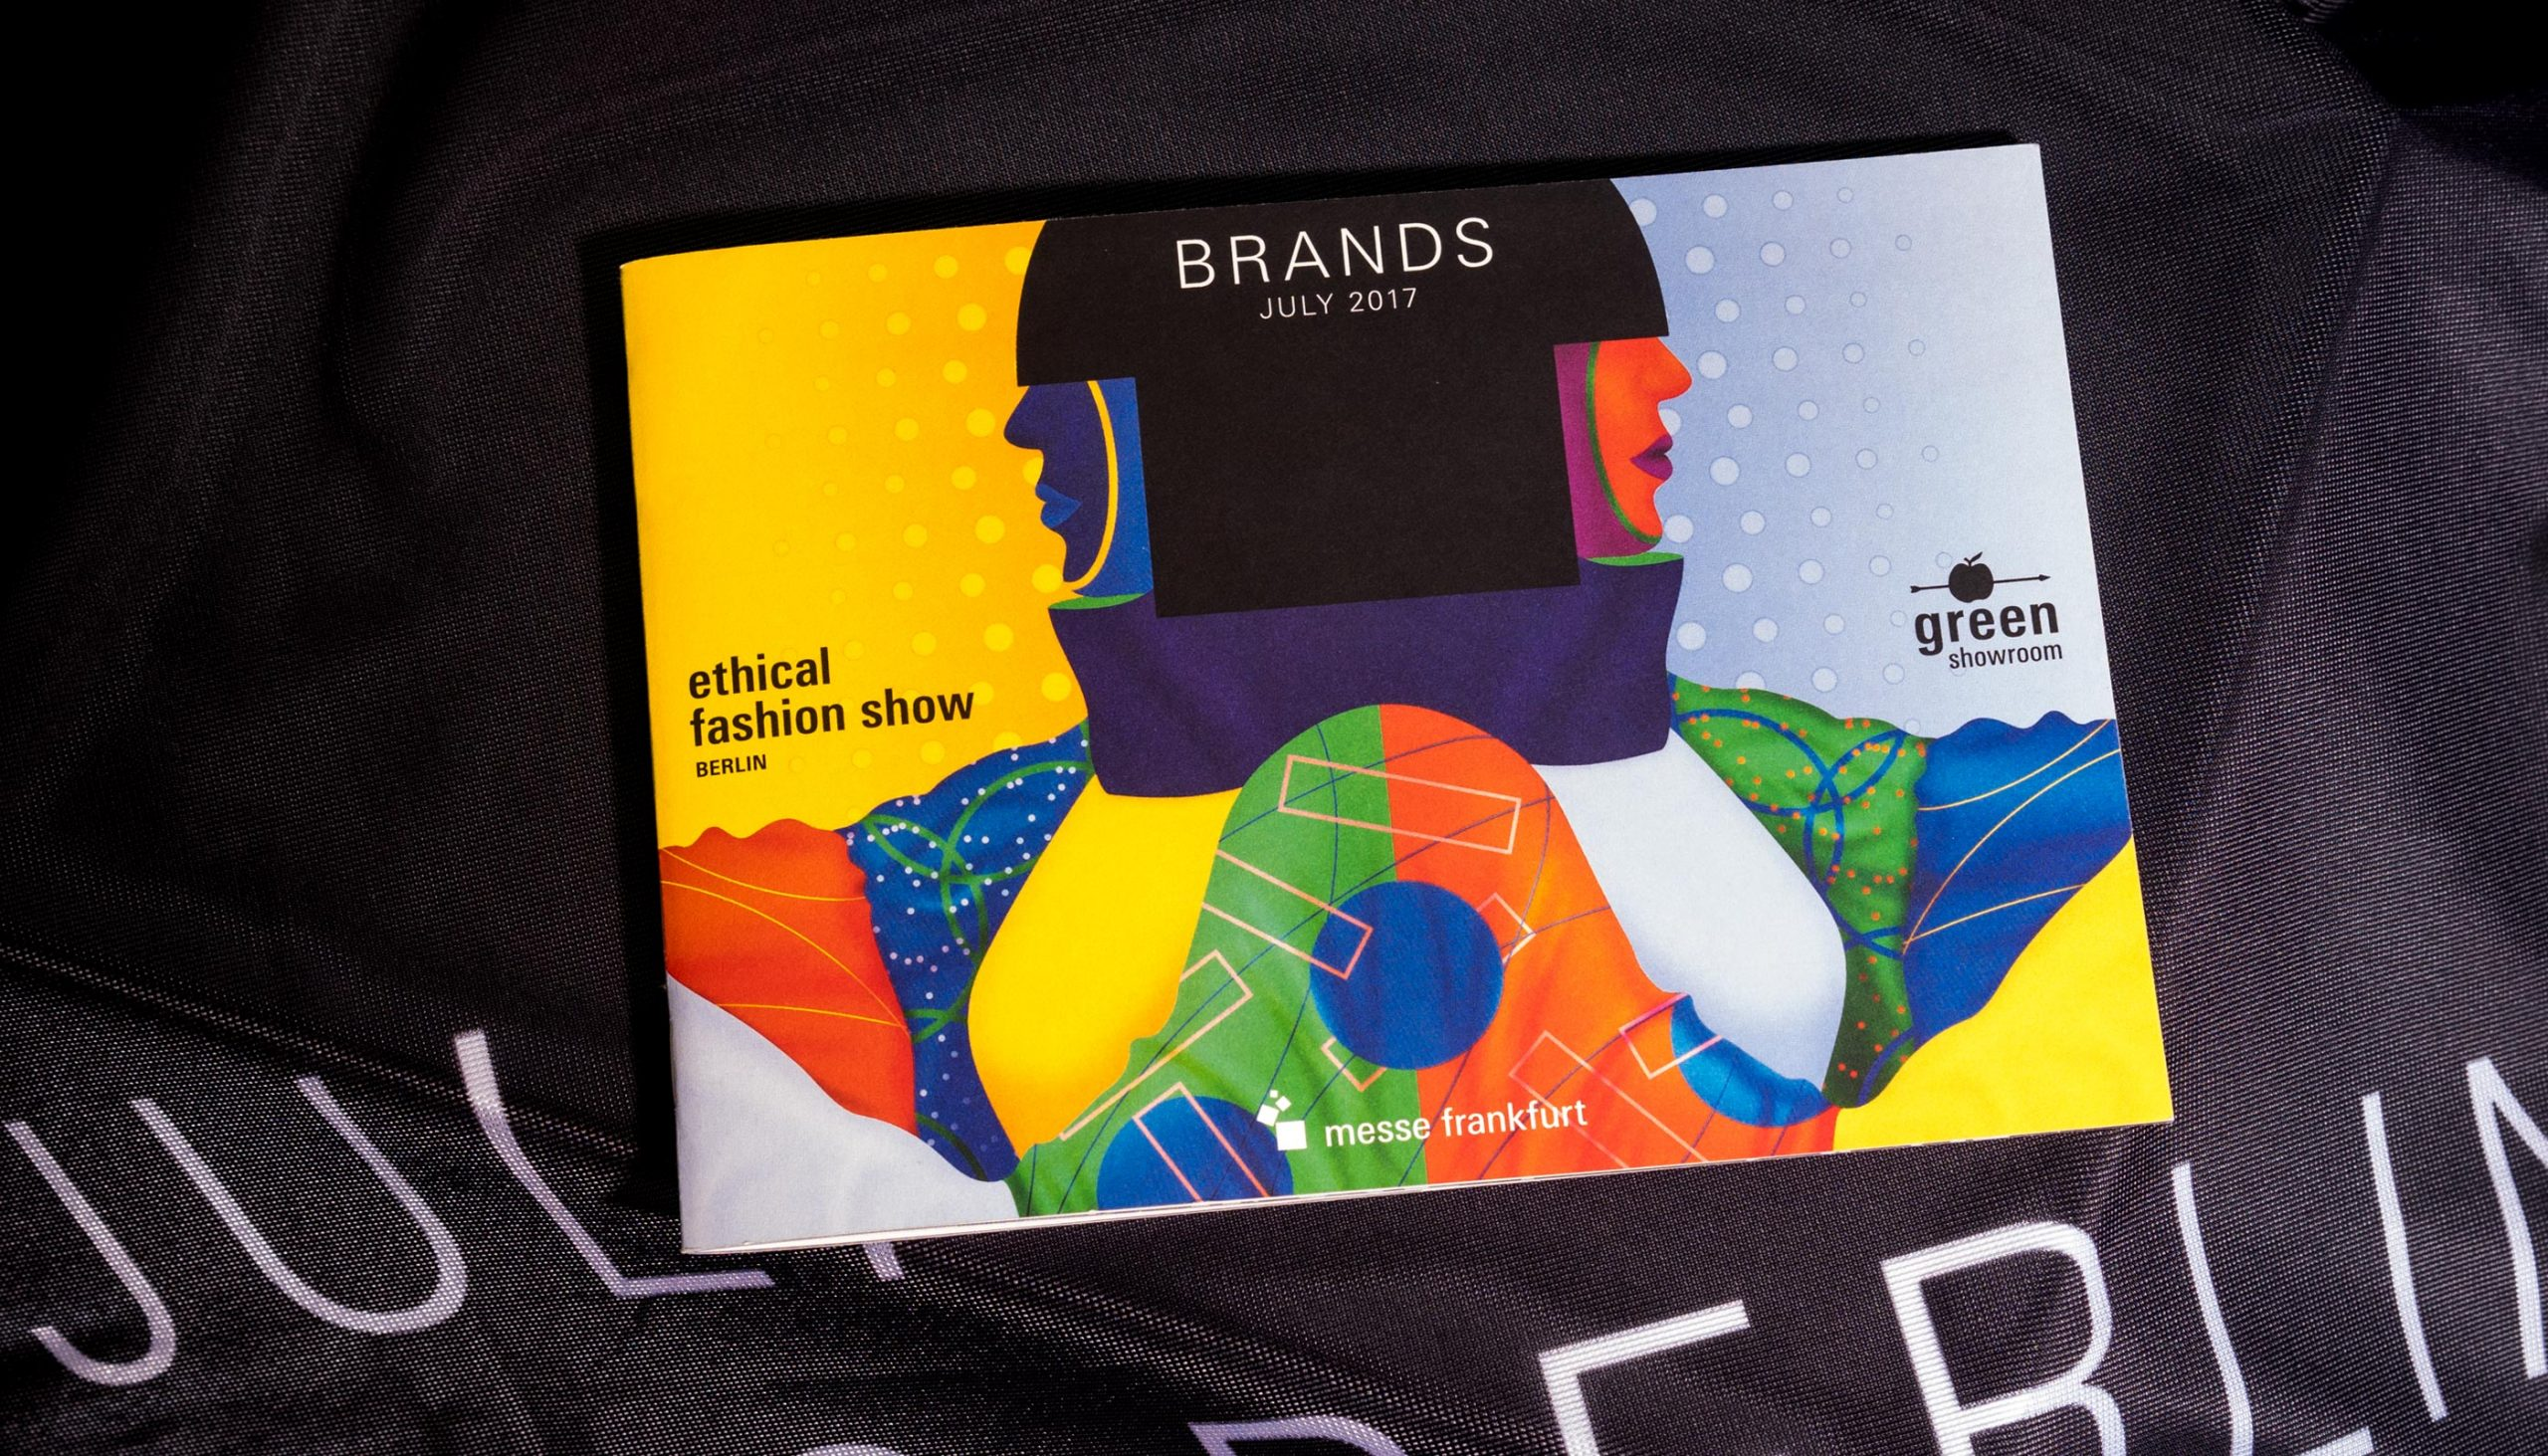 Messe Frankfurt – Ethical Fashion Show und Green Showroom Brandbook Detail Typografie Juli 2017 Brandbook Cover – Uthmöller und Partner